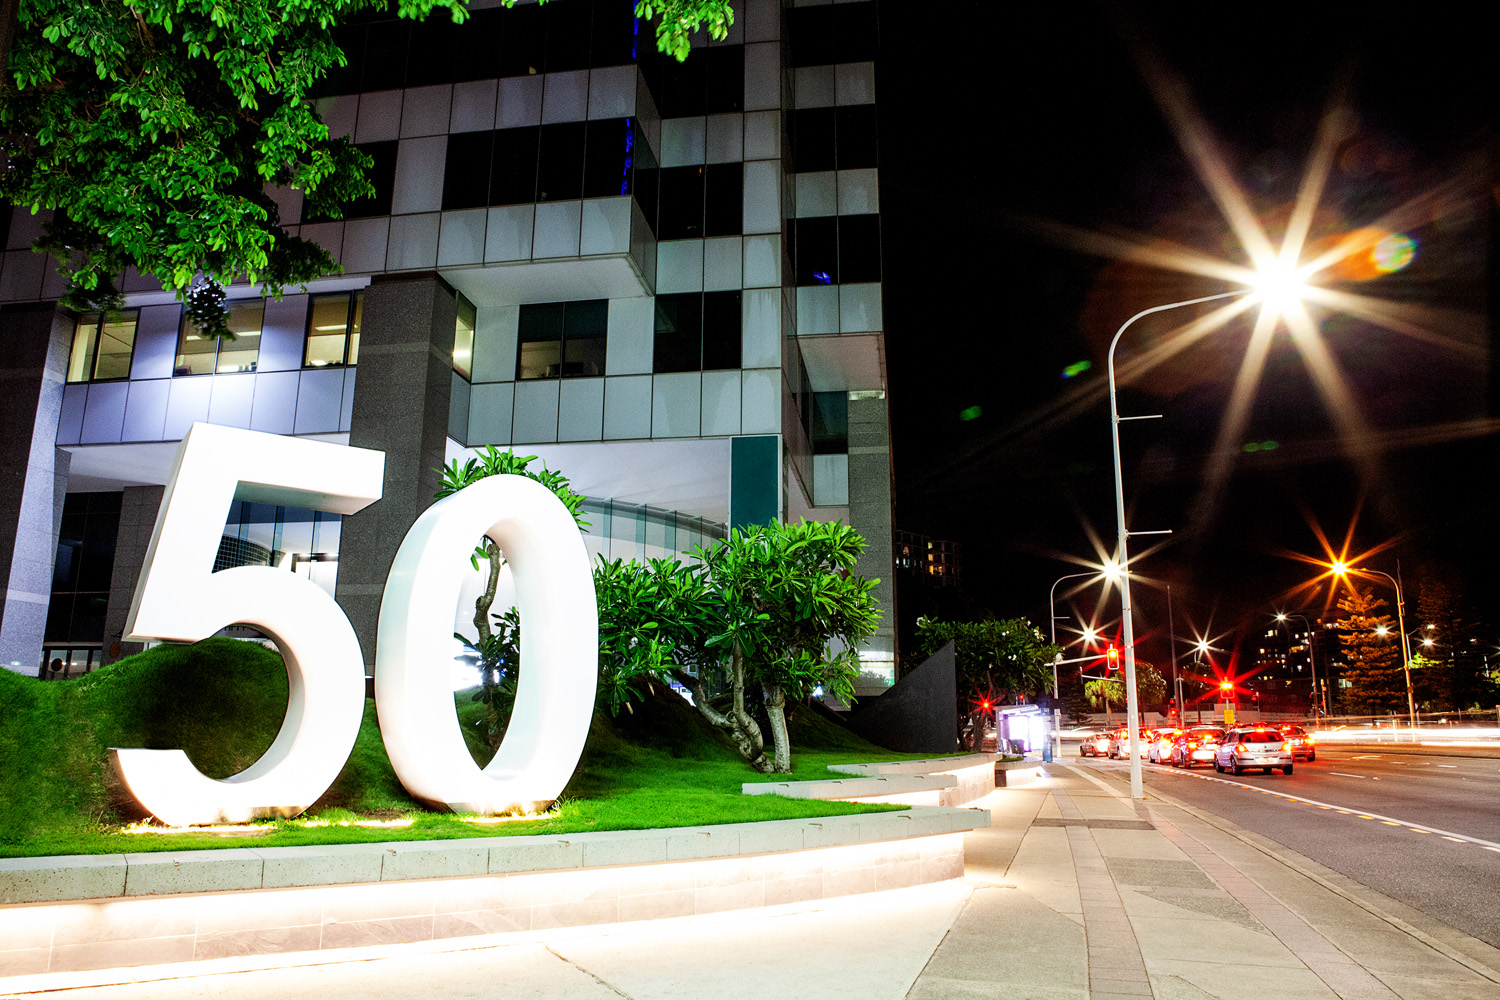 50 cavill avenue, gold coast architecture photography, @lananoir, gold coast commercial photographer, robina photographer, broadbeach photographer, best photographer gold coast, lana noir, business professional photographer, website content photographer